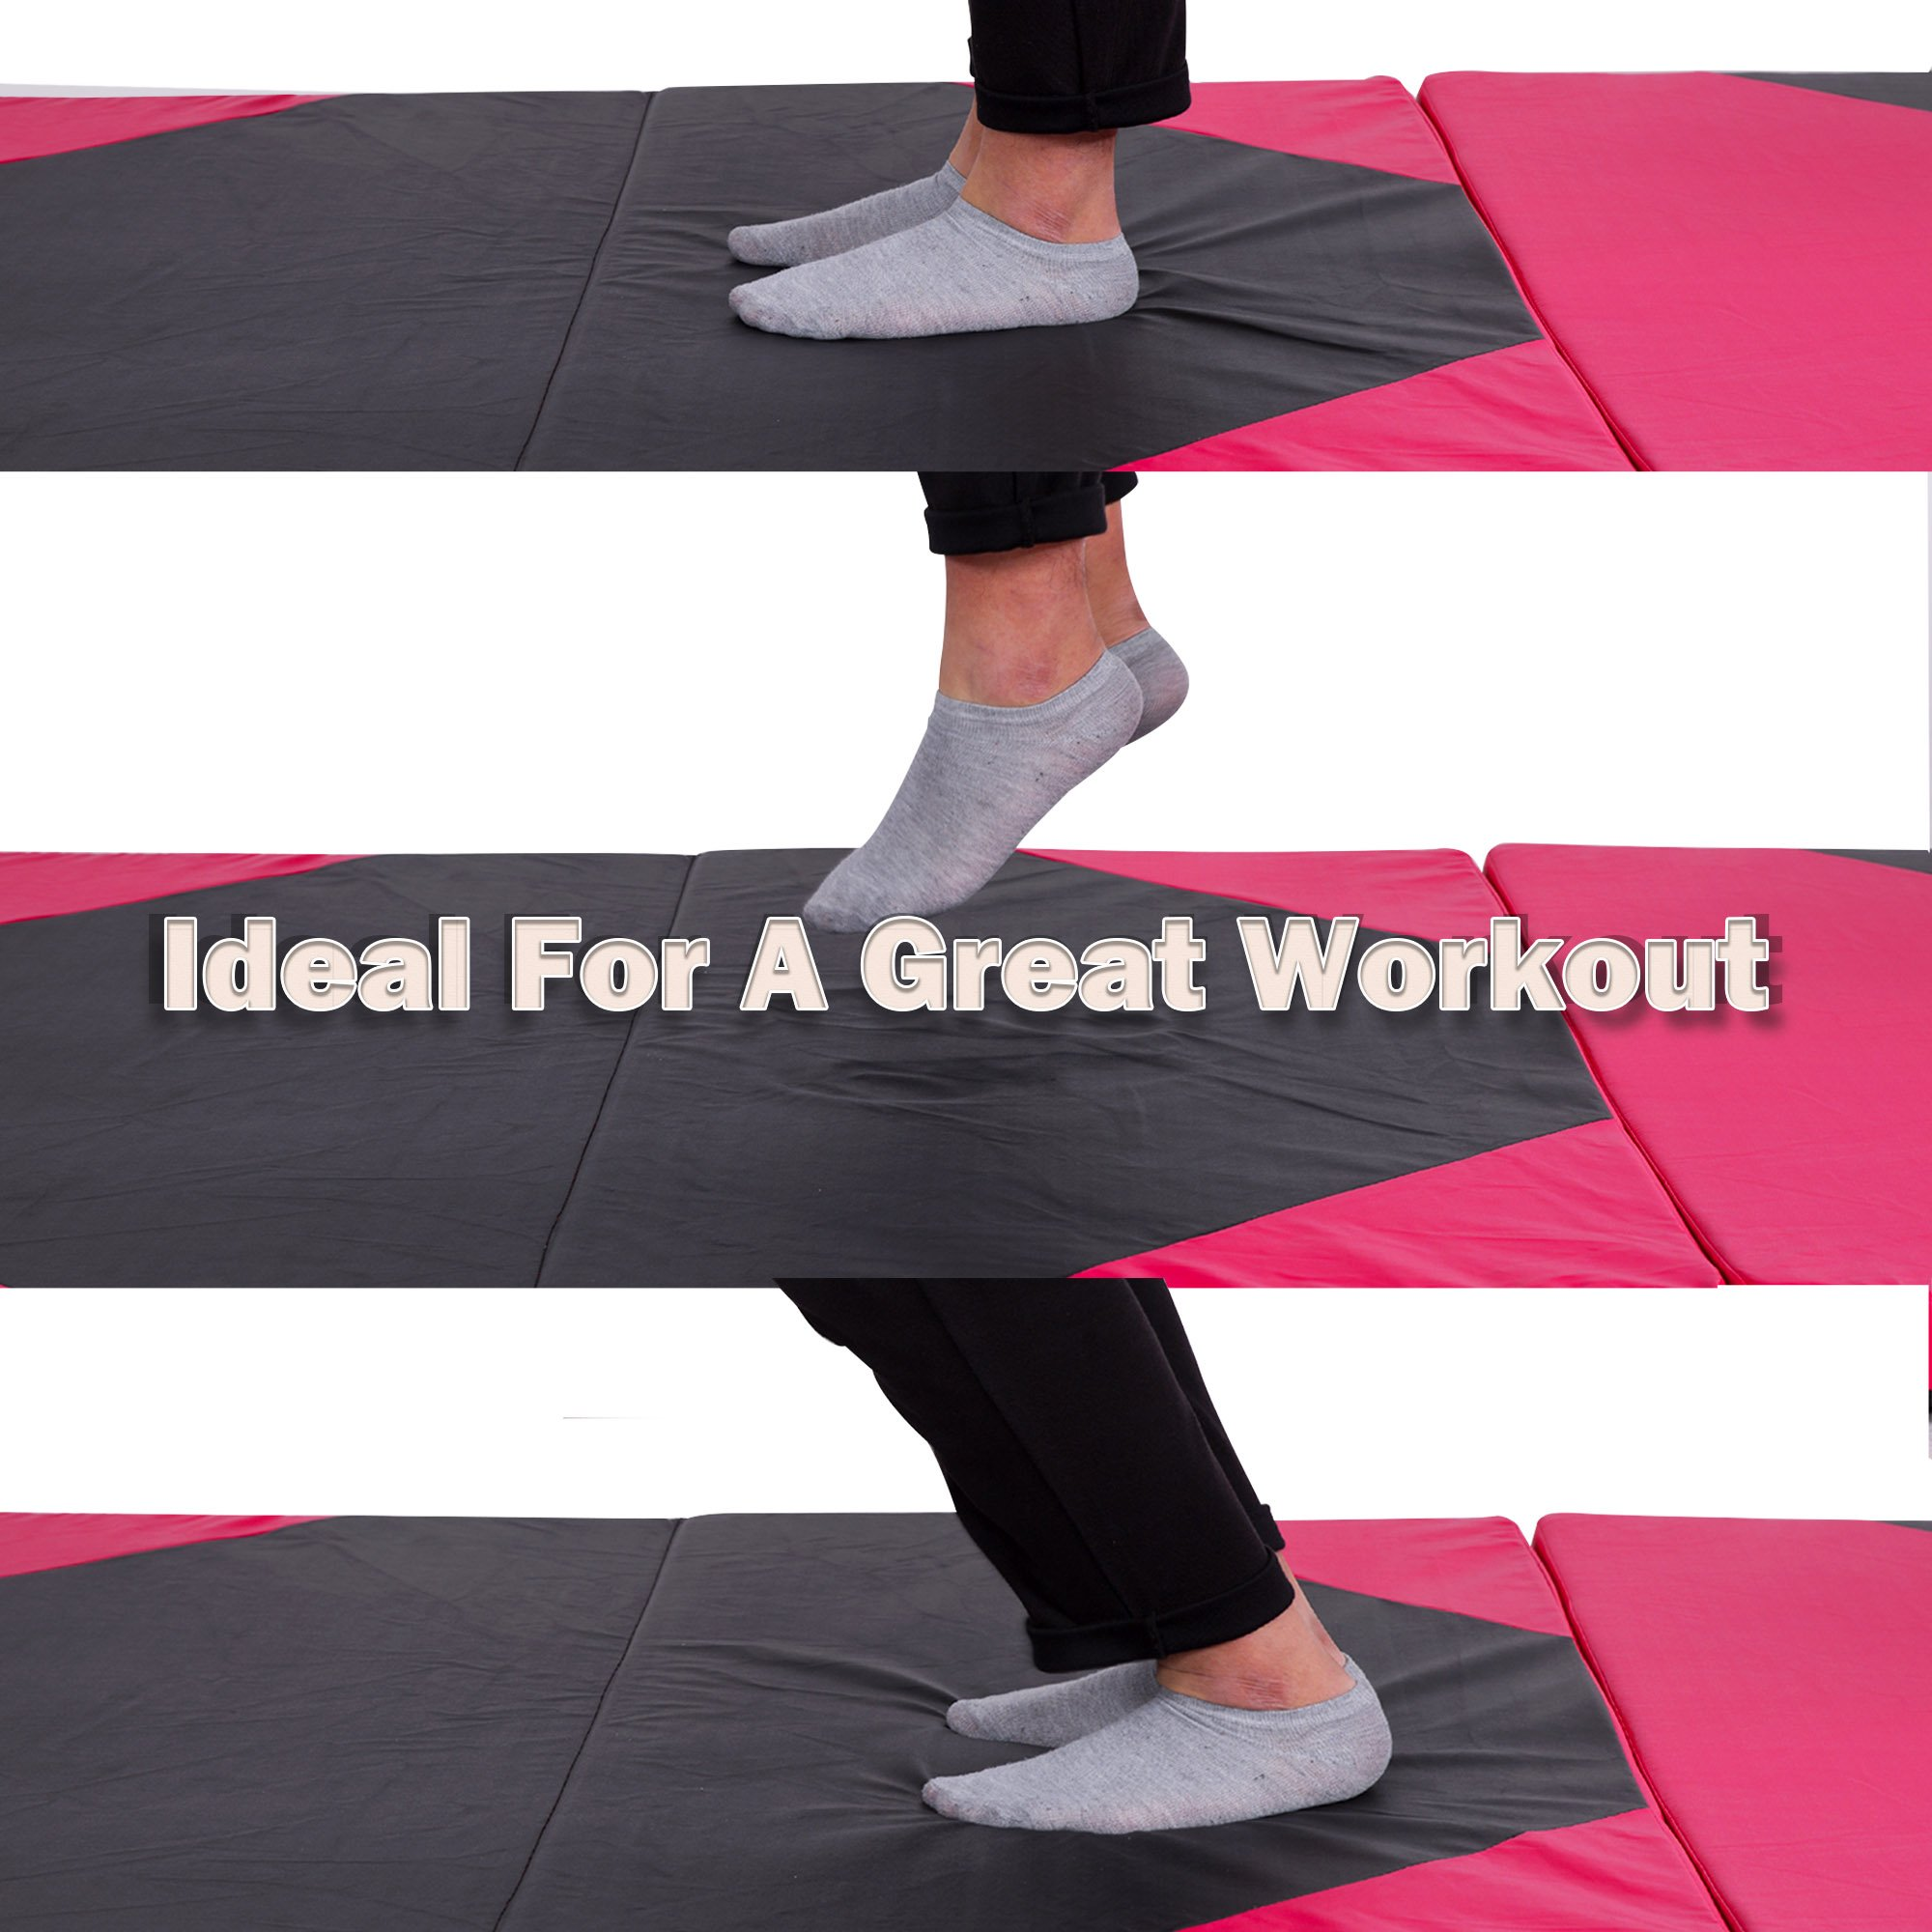 Sportmad 4'x10'x2 Thick Folding Panel Gymnastics Tumbling Mat Gym, Fitness, Exercise (Black/Pink) by Sportmad (Image #8)